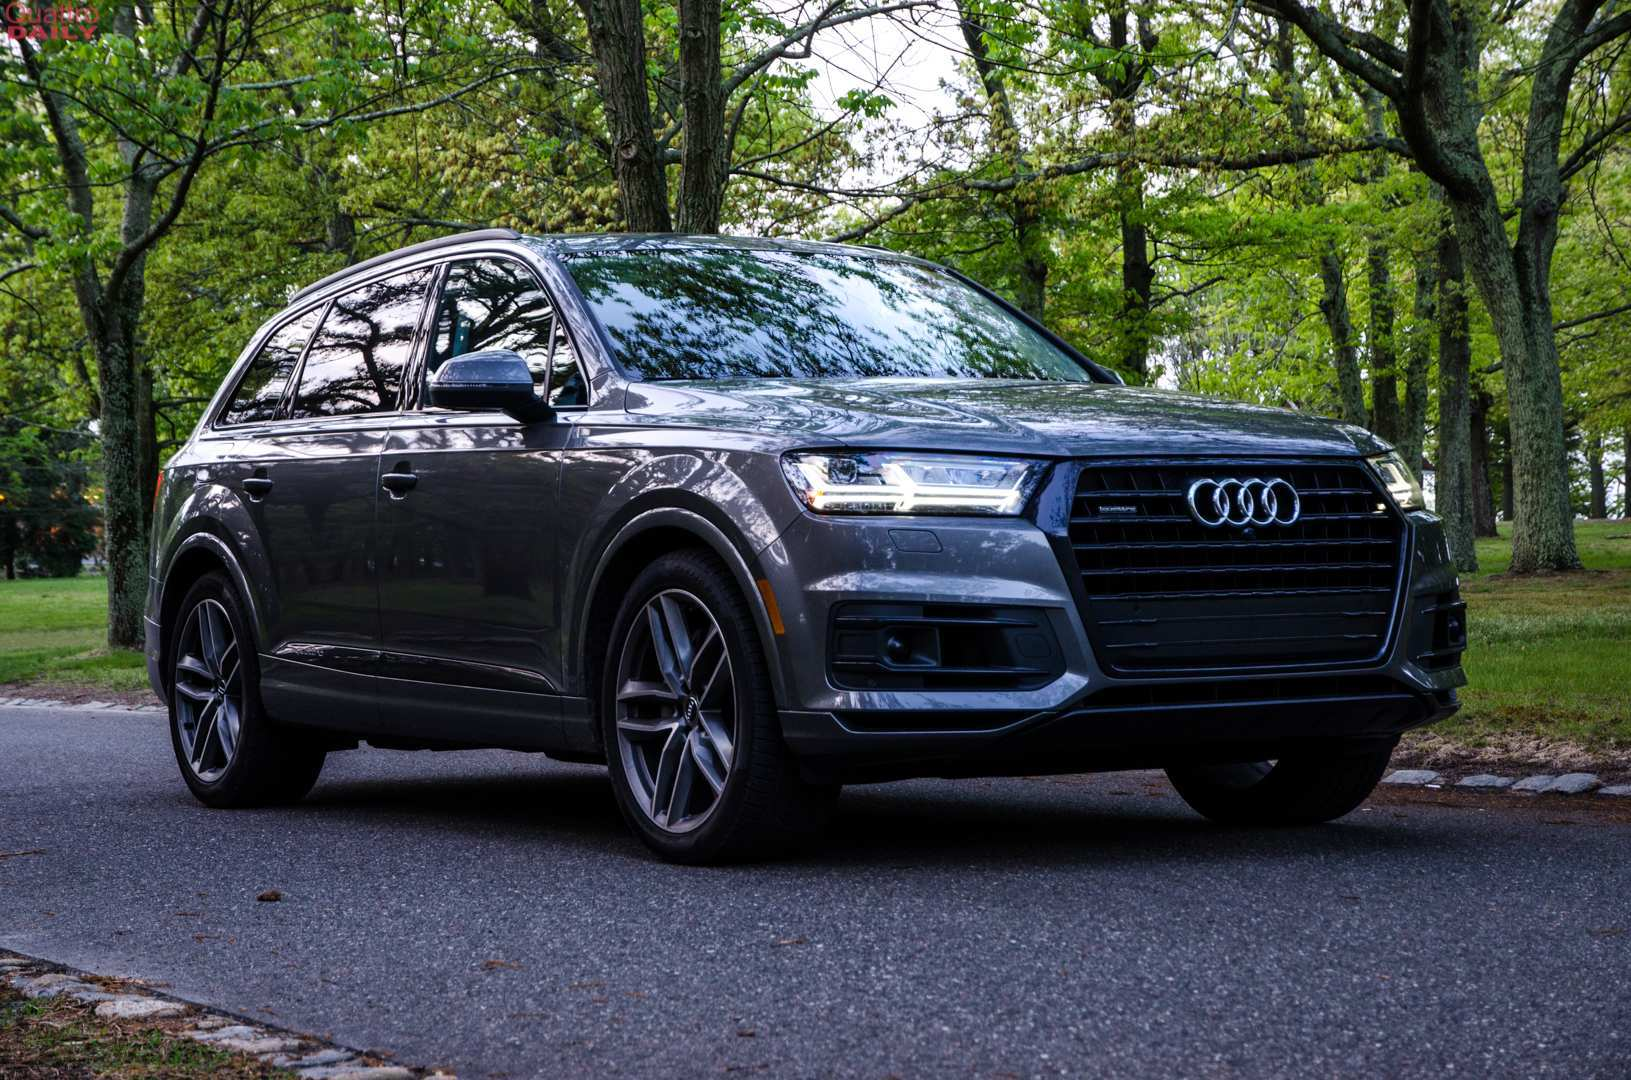 43 Best Review When Does 2020 Audi Q7 Come Out Rumors with When Does 2020 Audi Q7 Come Out